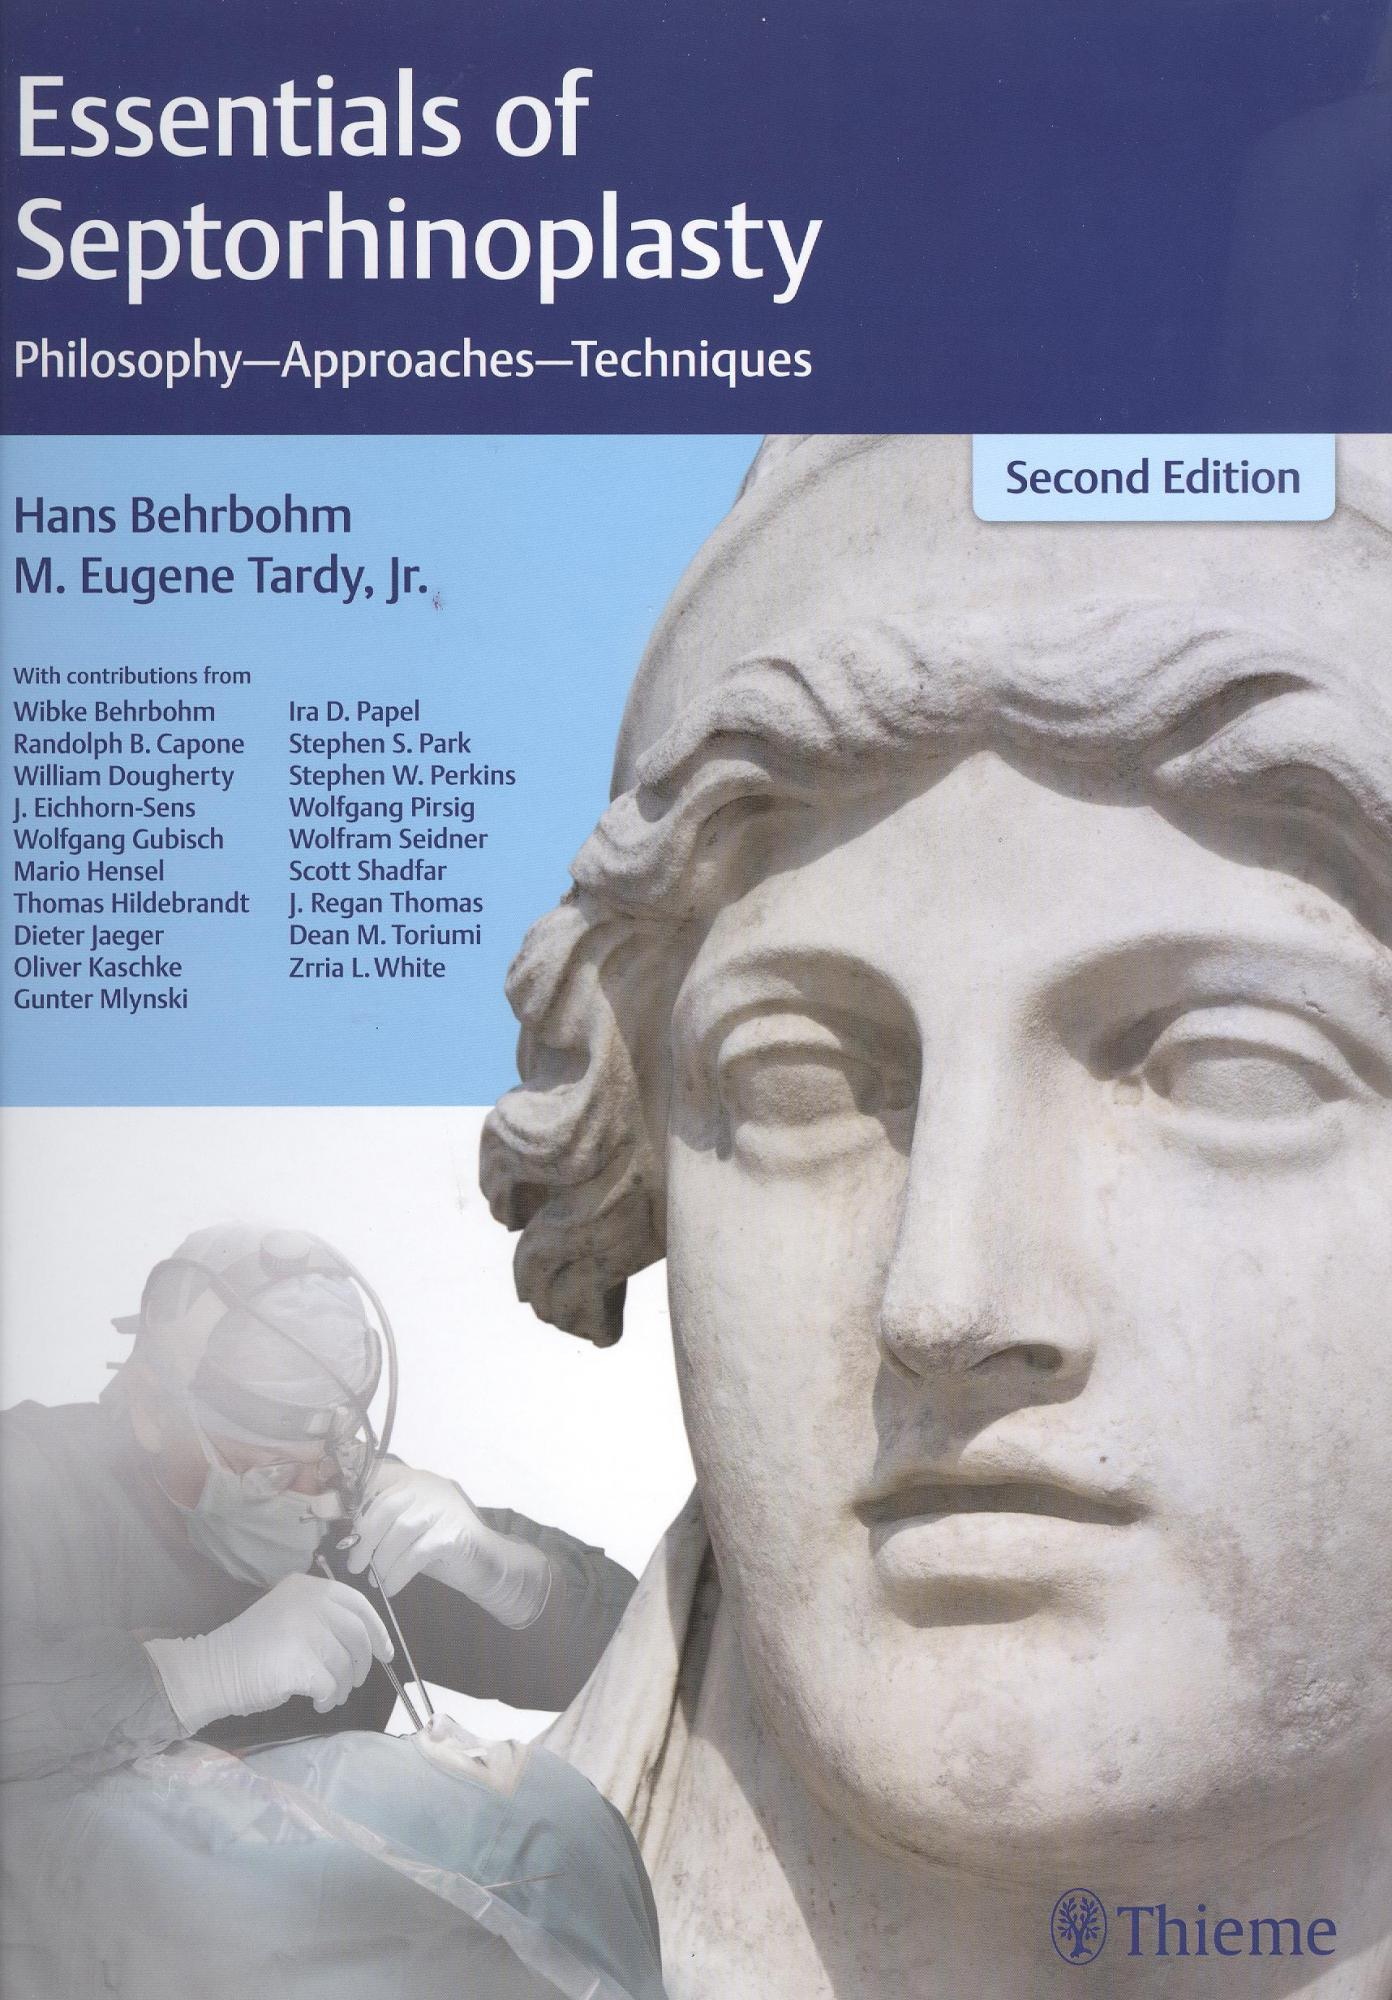 Essentials of Septorhinoplasty: Philosophy, Approaches, Techniques, 2nd Ed